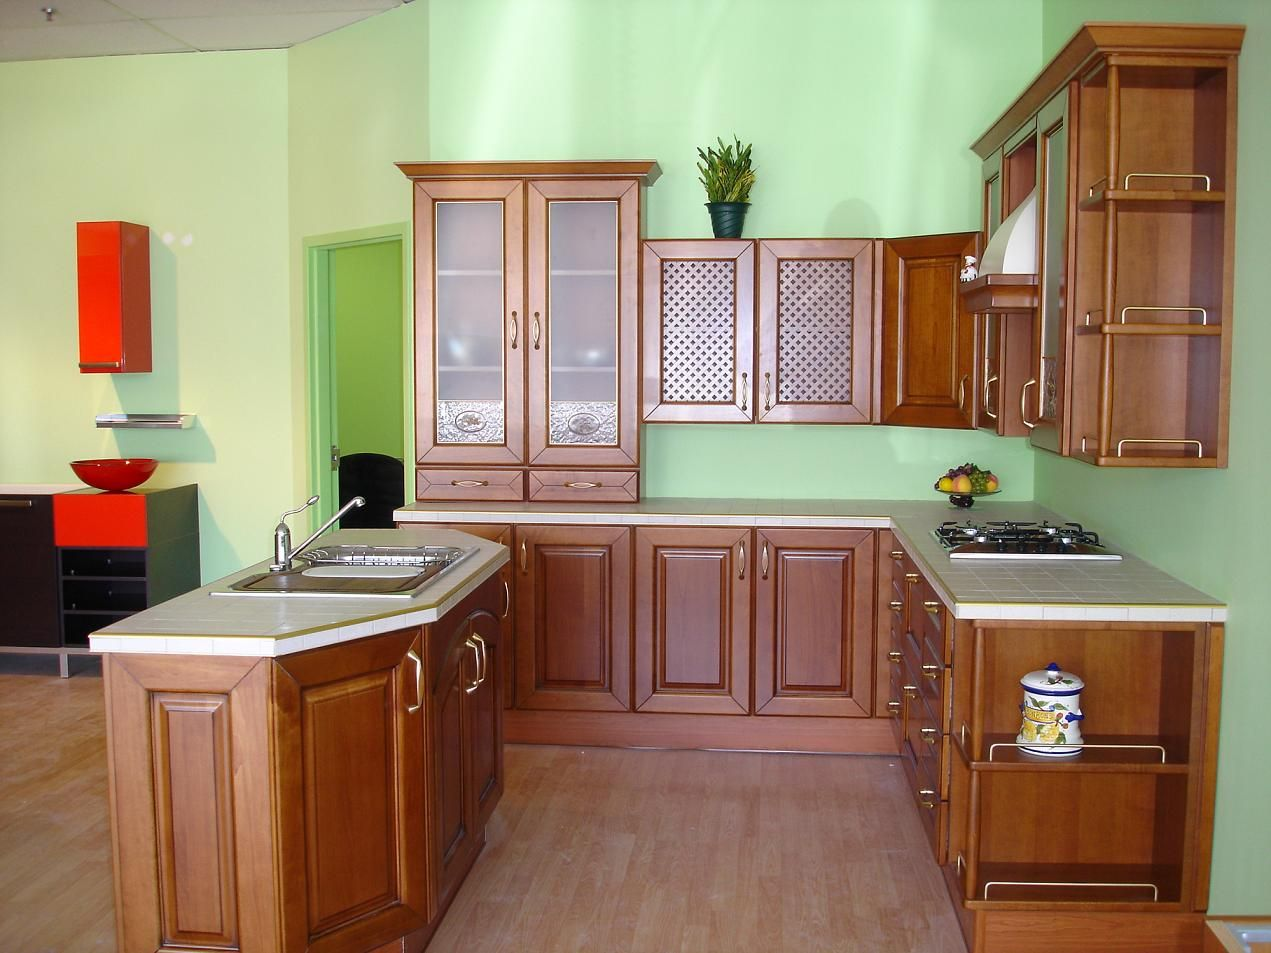 Bdcheerful Classic Italian Kitchen With Wood Cabinets  Dream Cool Designer Kitchen Colors 2018